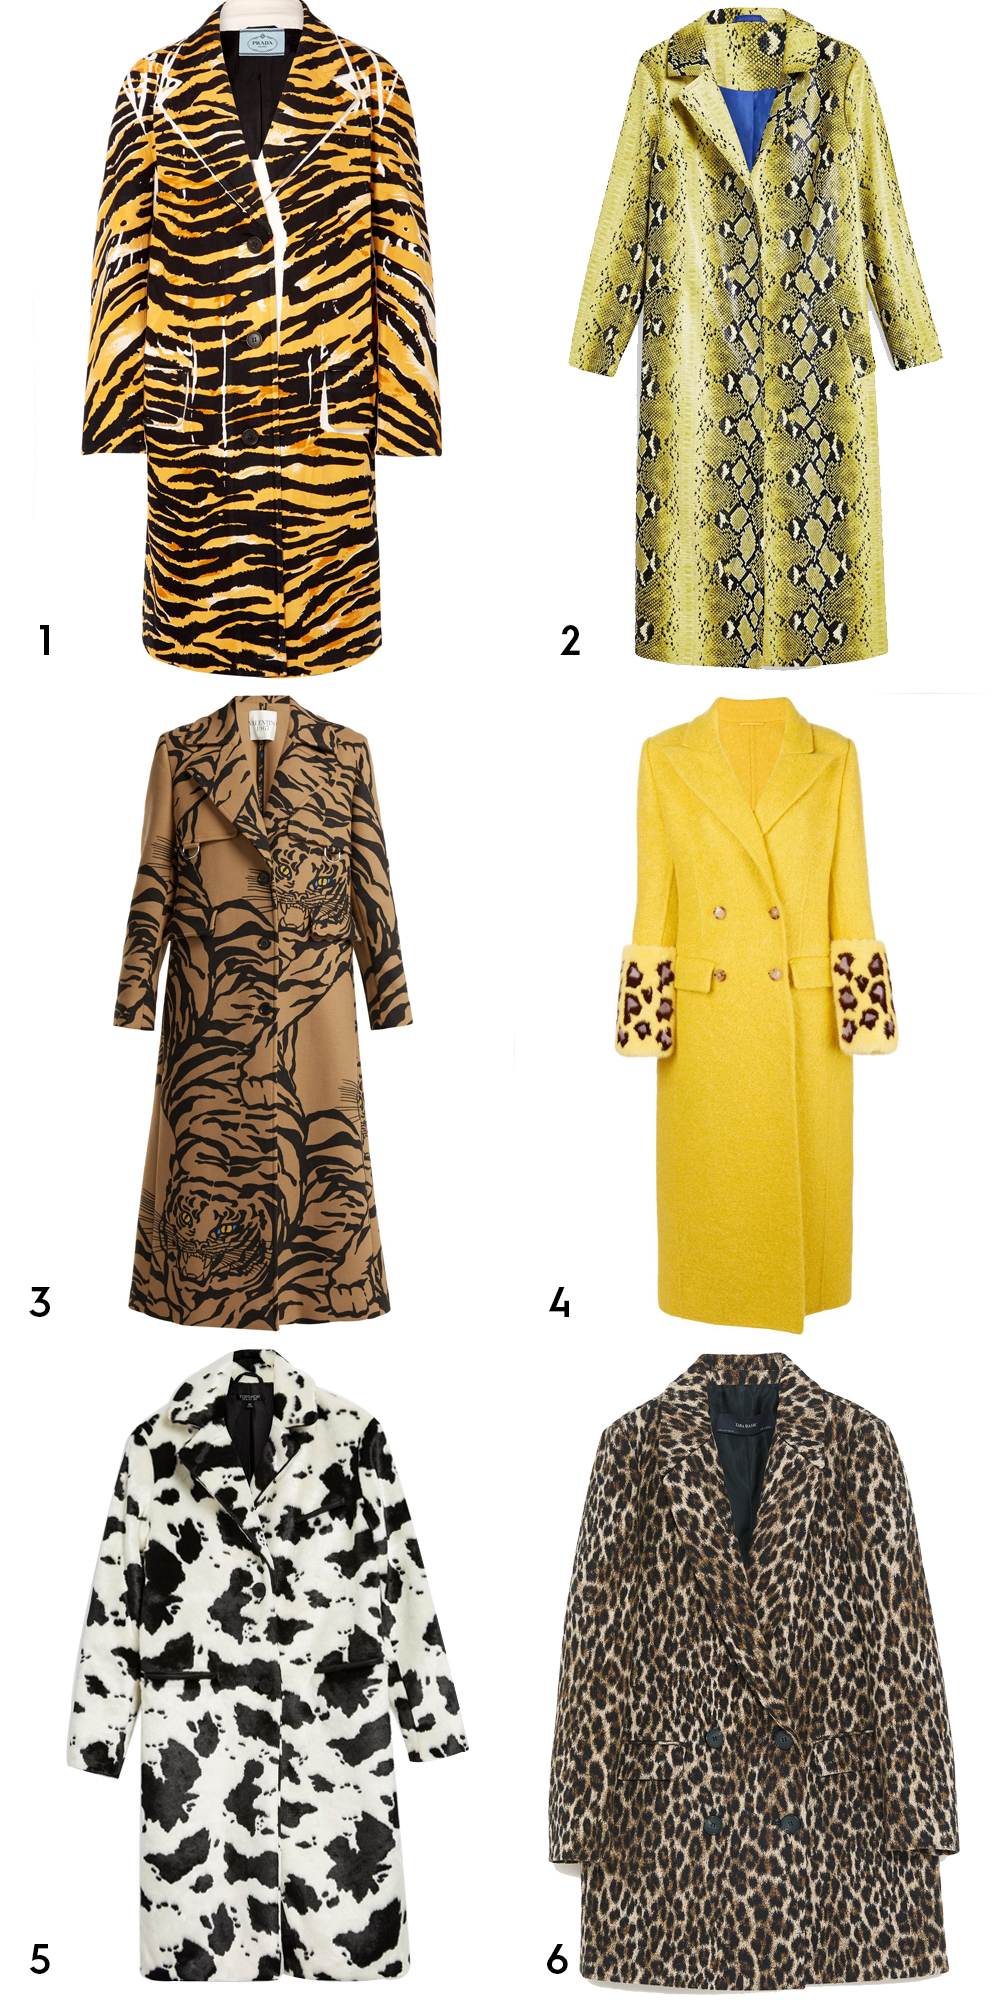 1Printed cotton blend coat by Prada, €1,850 at net-a-porter.com, 2 snake-printed coat, €110 at topshop.com, 3tiger-print wool-blend trench coat by Valentino, €4,980 at matchesfashion.com, 4double-breasted coat by Ermanno Scervino, €5,396 at farfetch.com, 5 cow print coat, €130 at topshop.com, 6 leopard print jacquard coat, €9.95 at zara.com